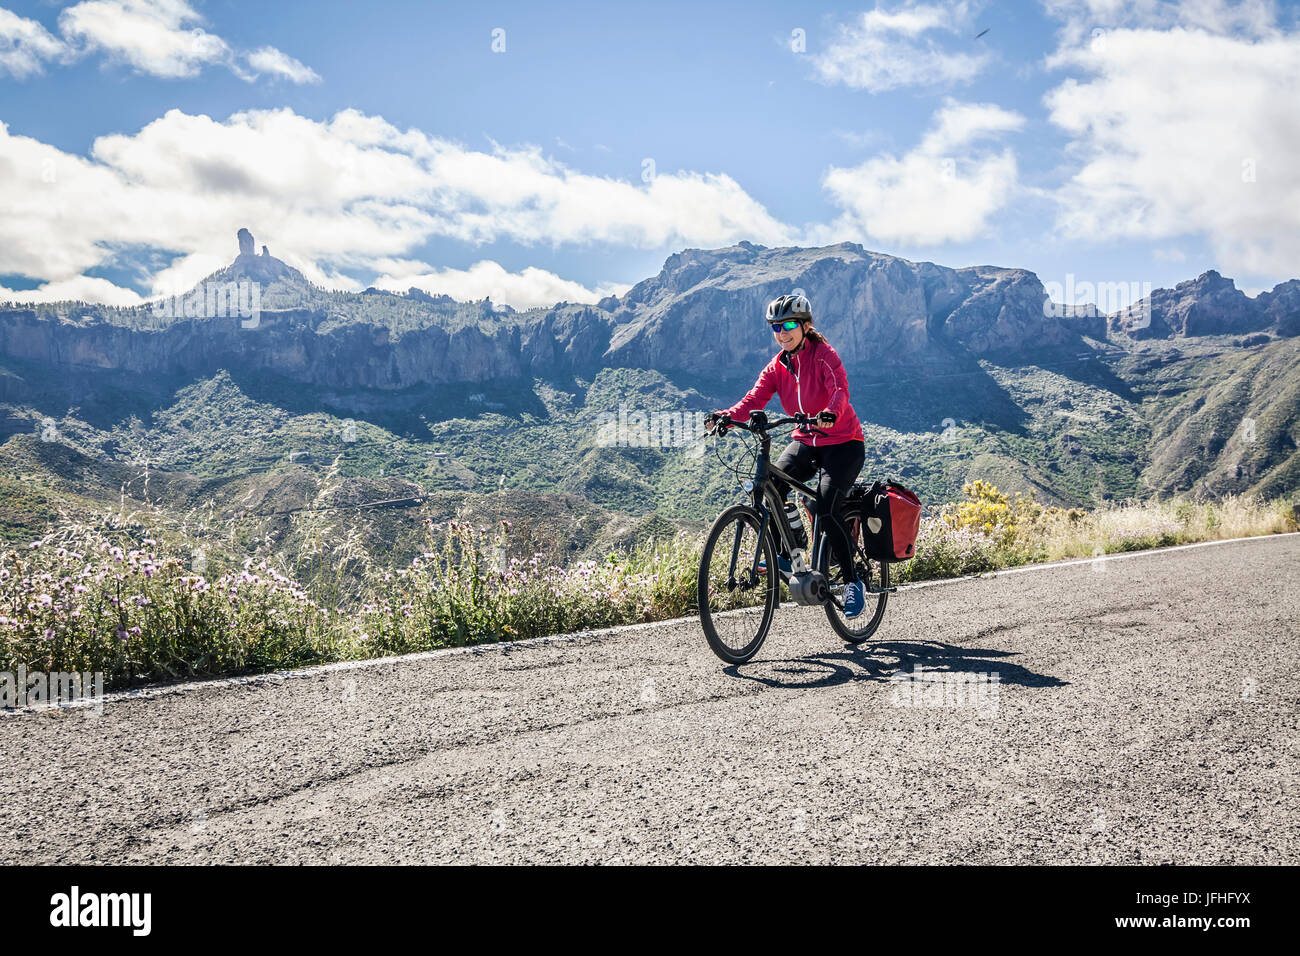 Woman riding electric bicycle on mountain road - Stock Image